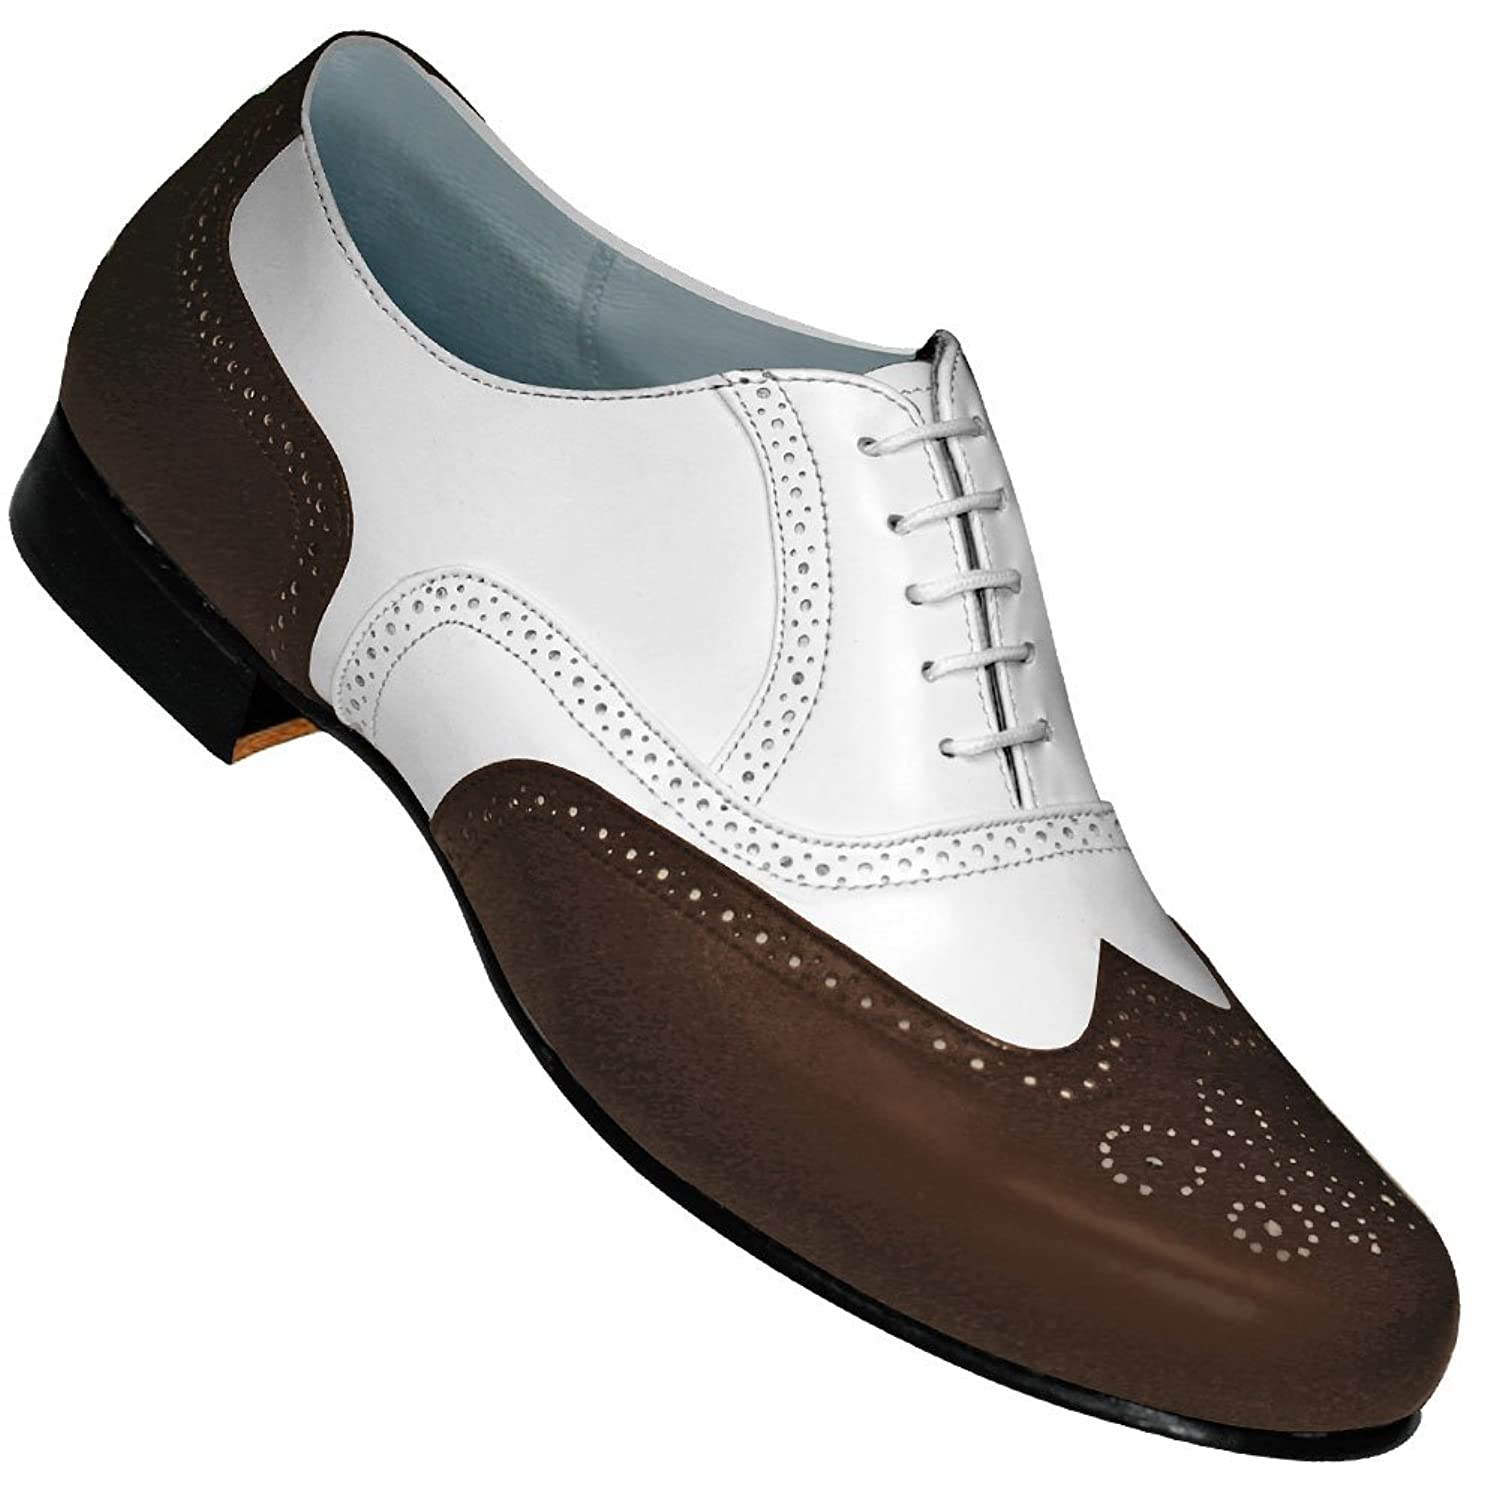 Rockabilly Men's Clothing Aris Allen Mens 1930s Brown and White Spat Style Wingtip Dance Shoe $48.95 AT vintagedancer.com